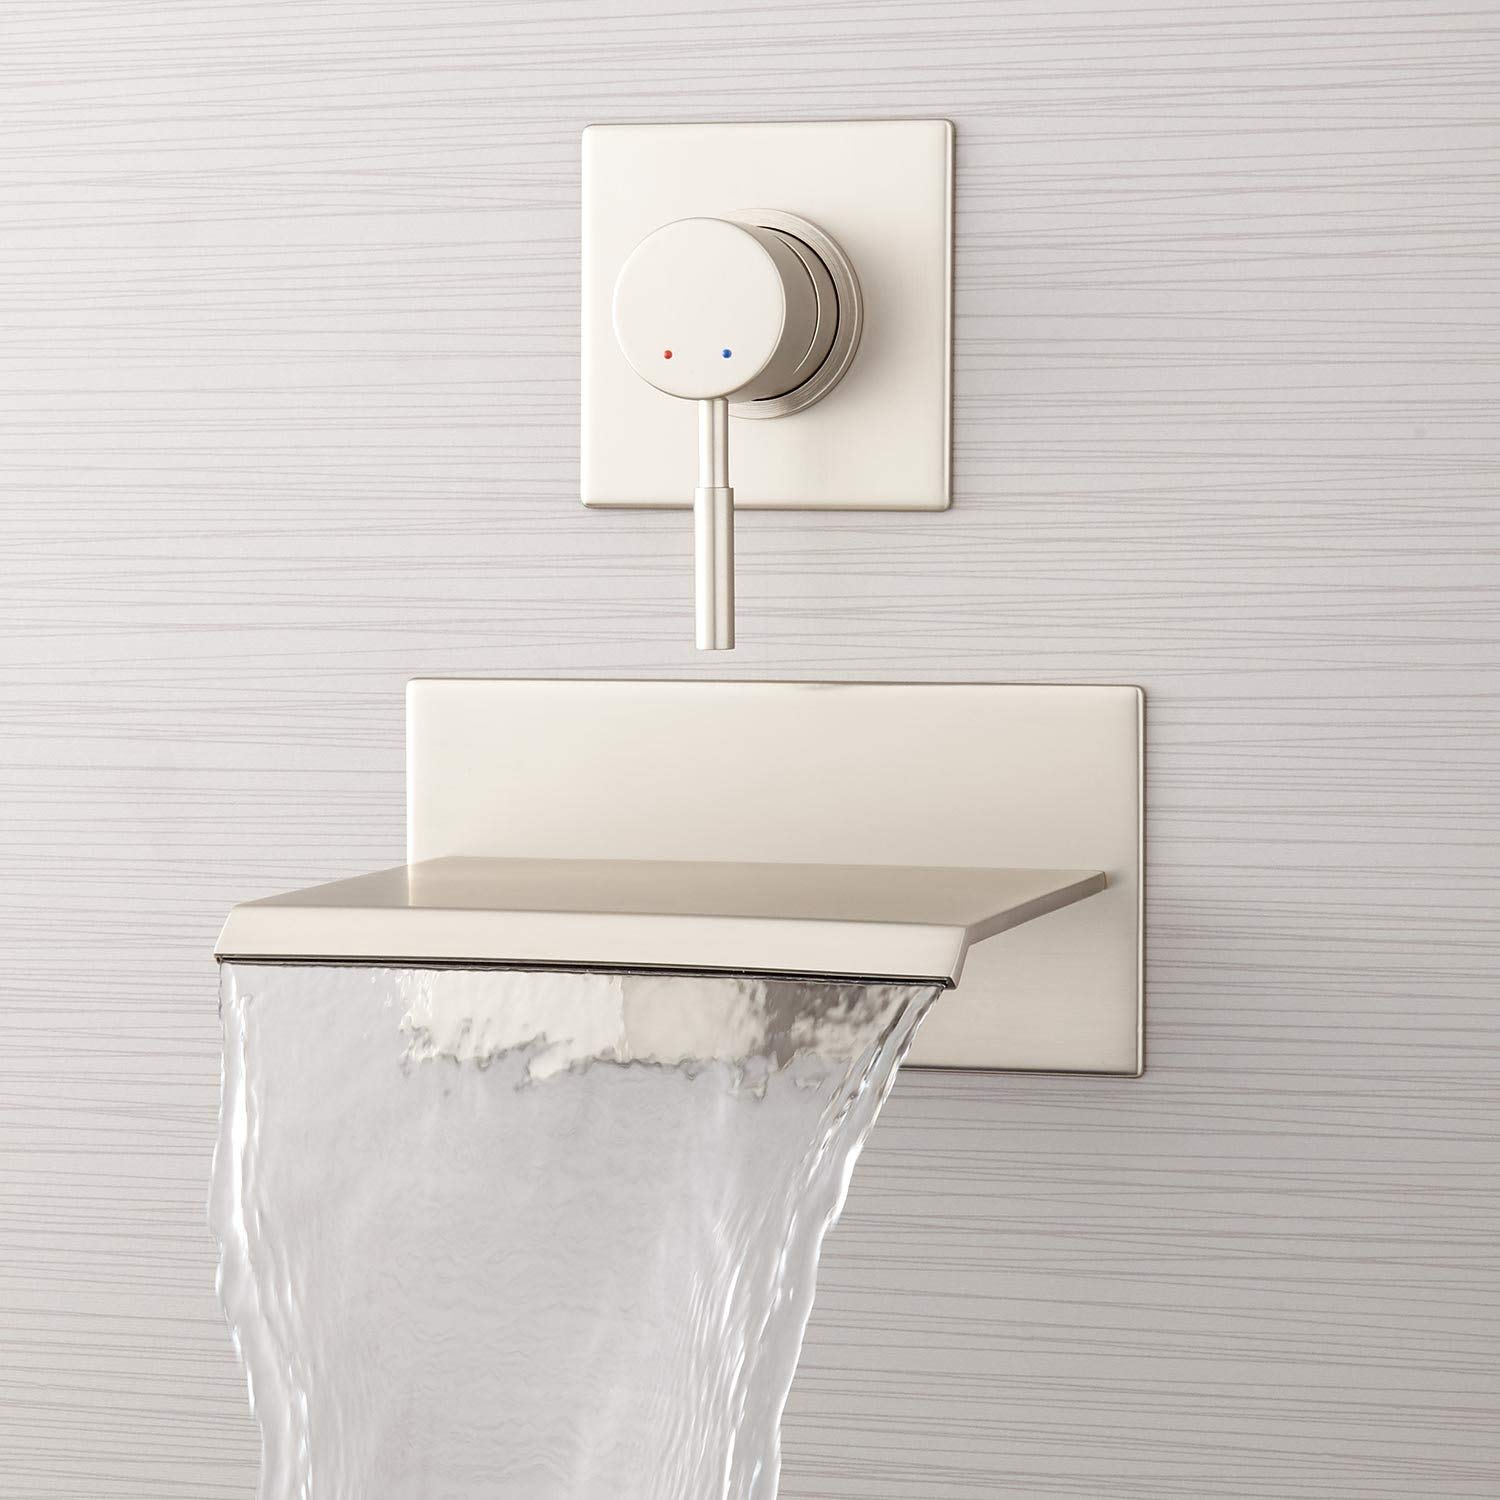 Signature Hardware 378993 Lavelle 6 1 2 Waterfall Wall Mounted Tub